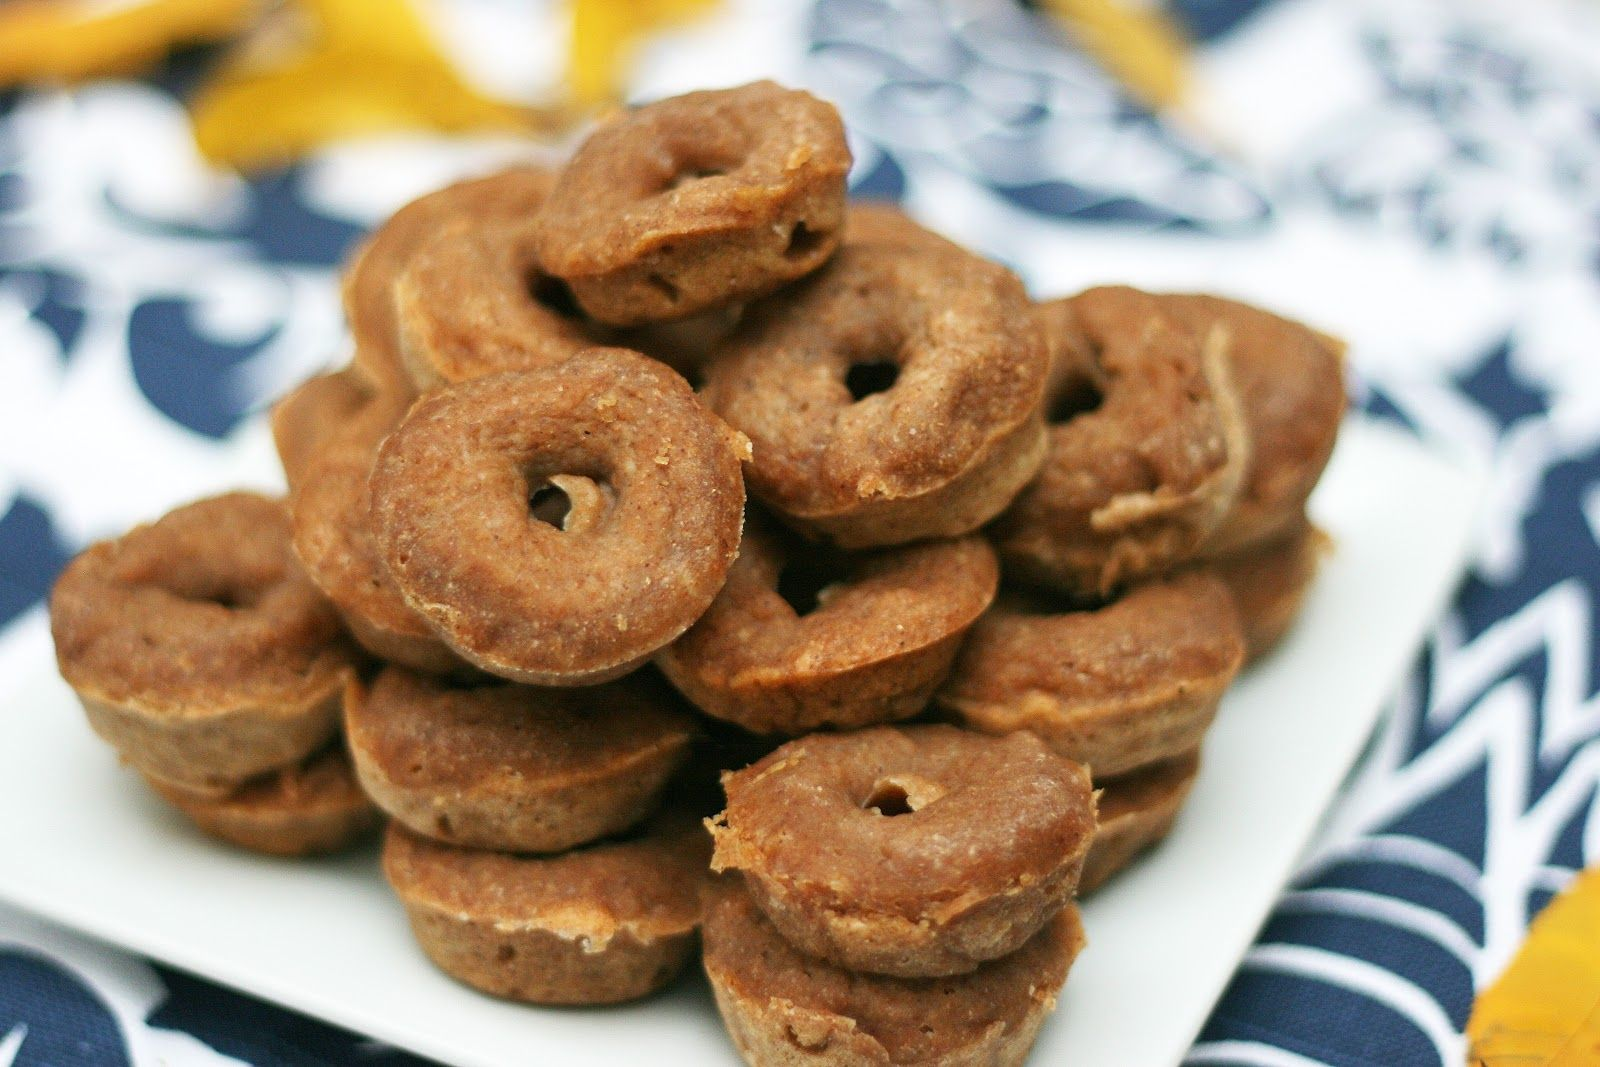 Mix it Up: Healthier Apple Cider Donuts